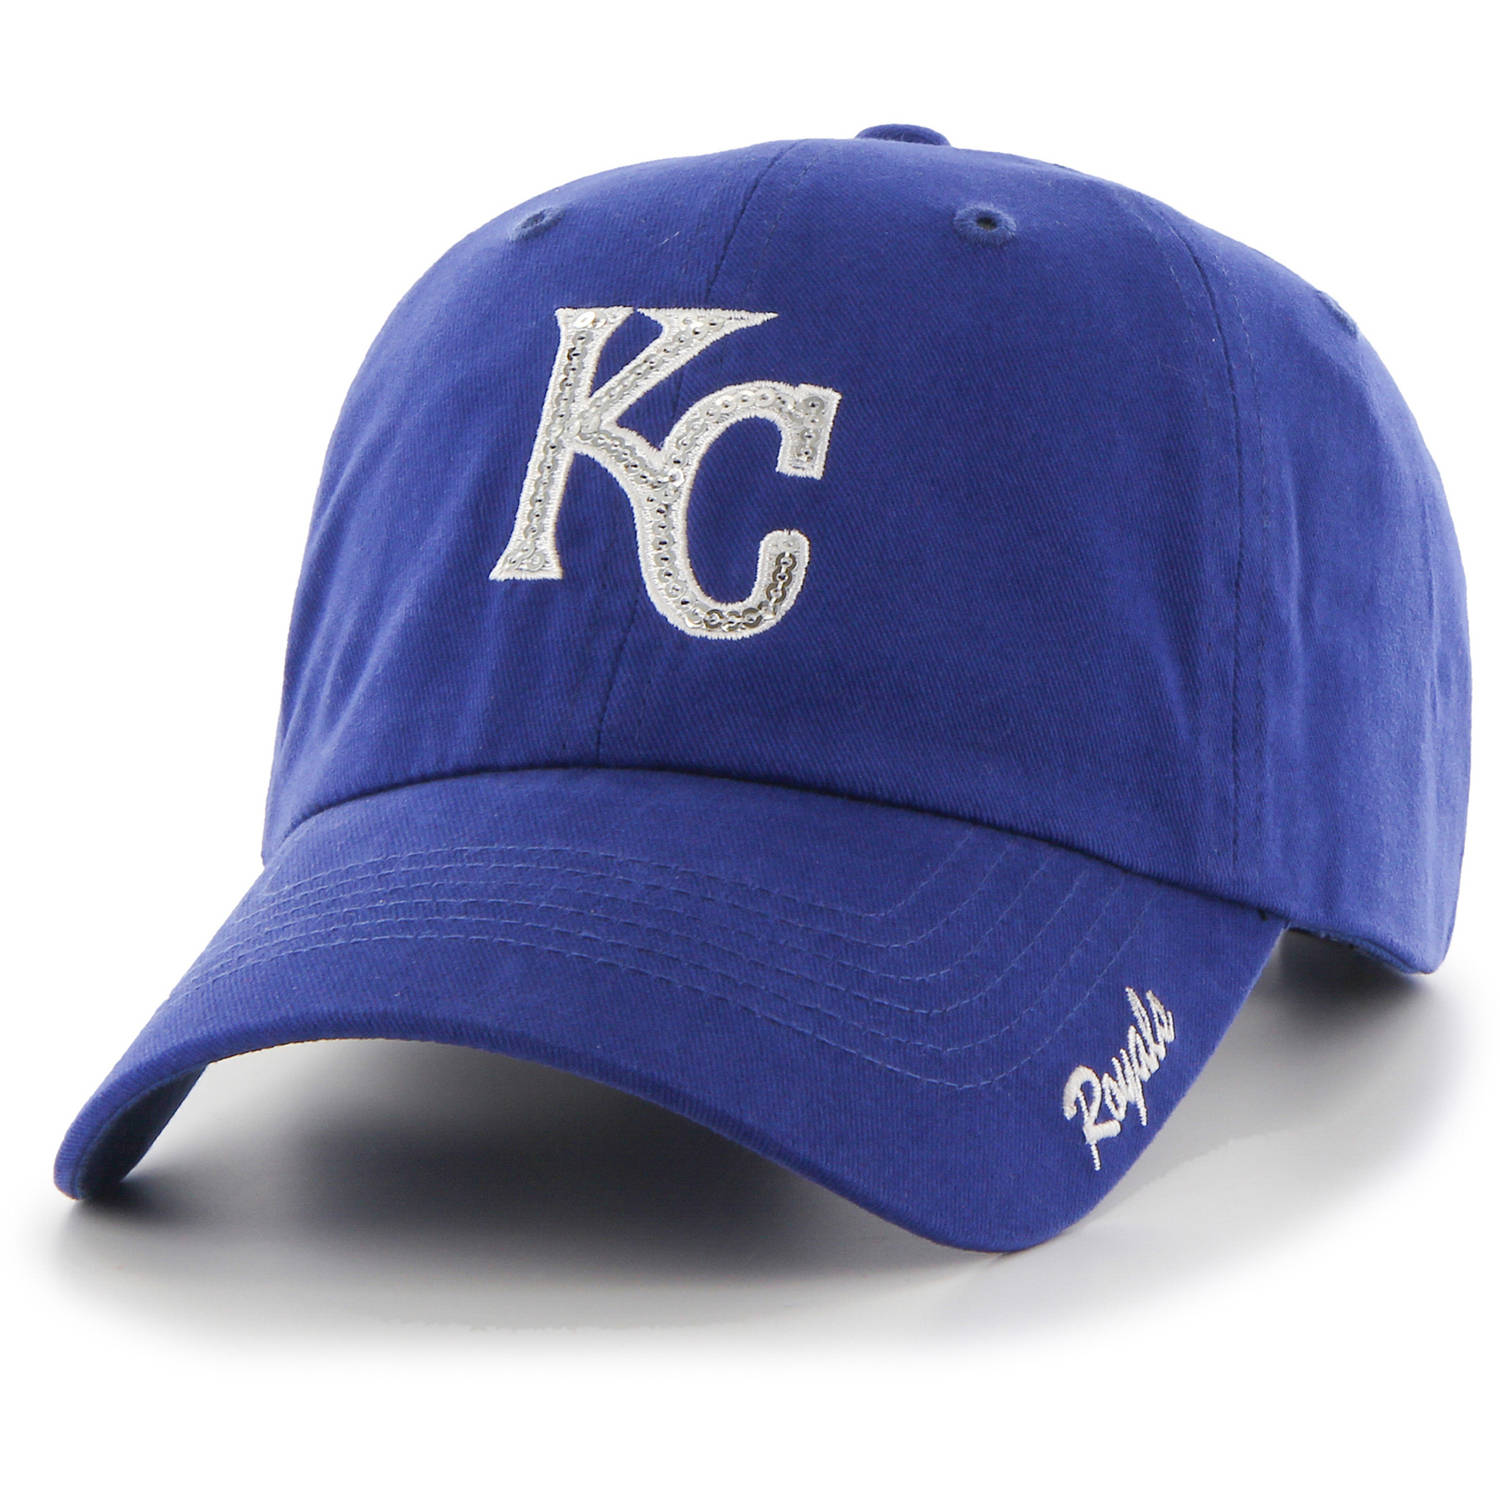 MLB Kansas City Royals Sparkle Women's Adjustable Cap Hat by Fan Favorite by Overstock